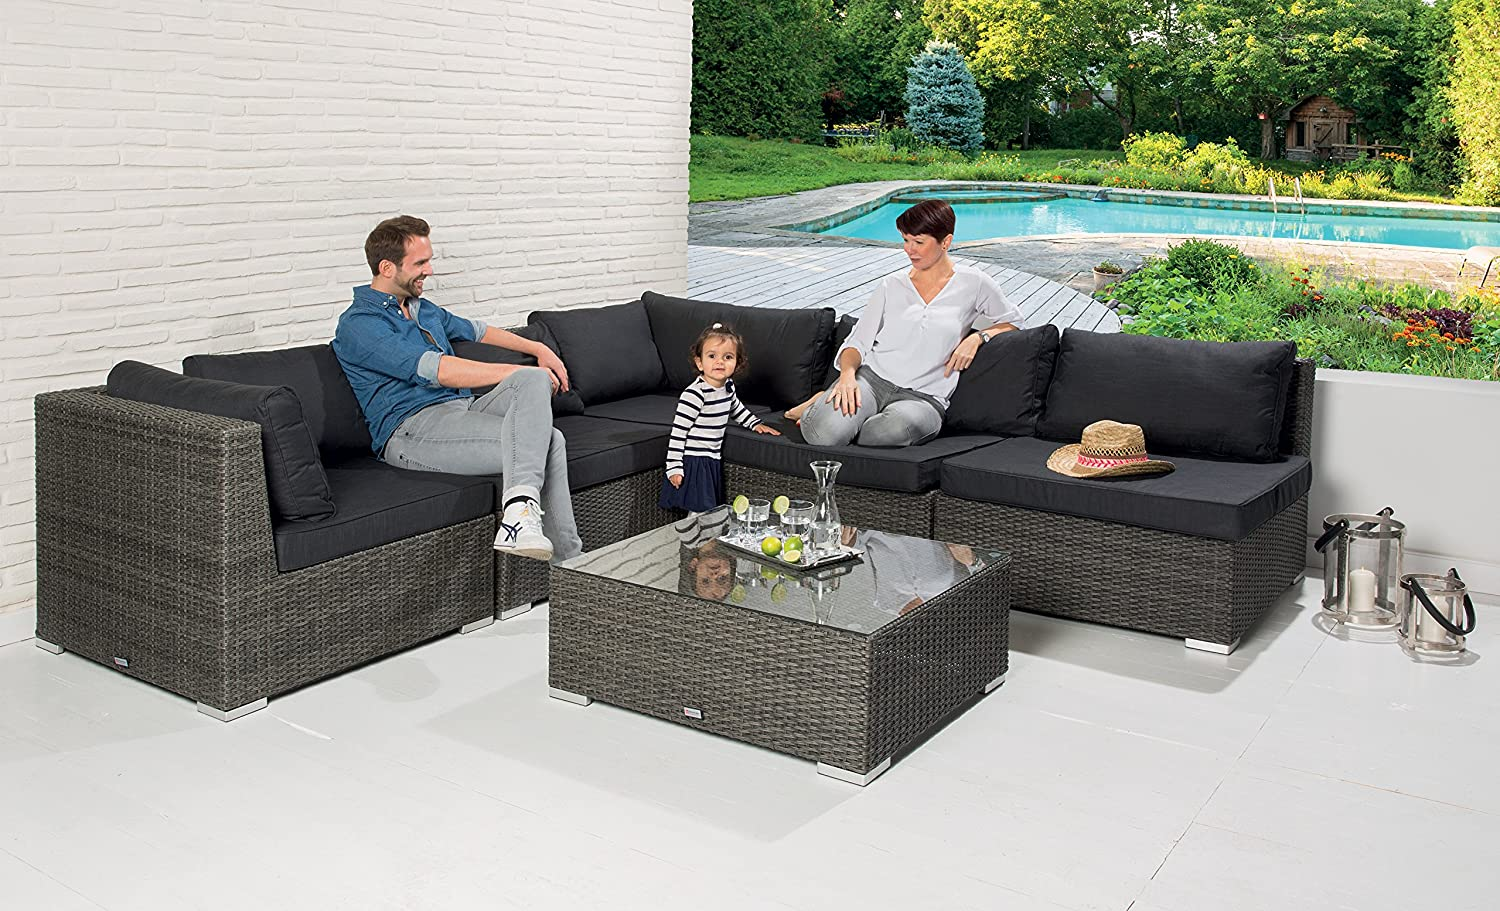 poly rattan garten lounge gartenset garnitur grau gartenm bel sofa sitzgruppe g nstig bestellen. Black Bedroom Furniture Sets. Home Design Ideas